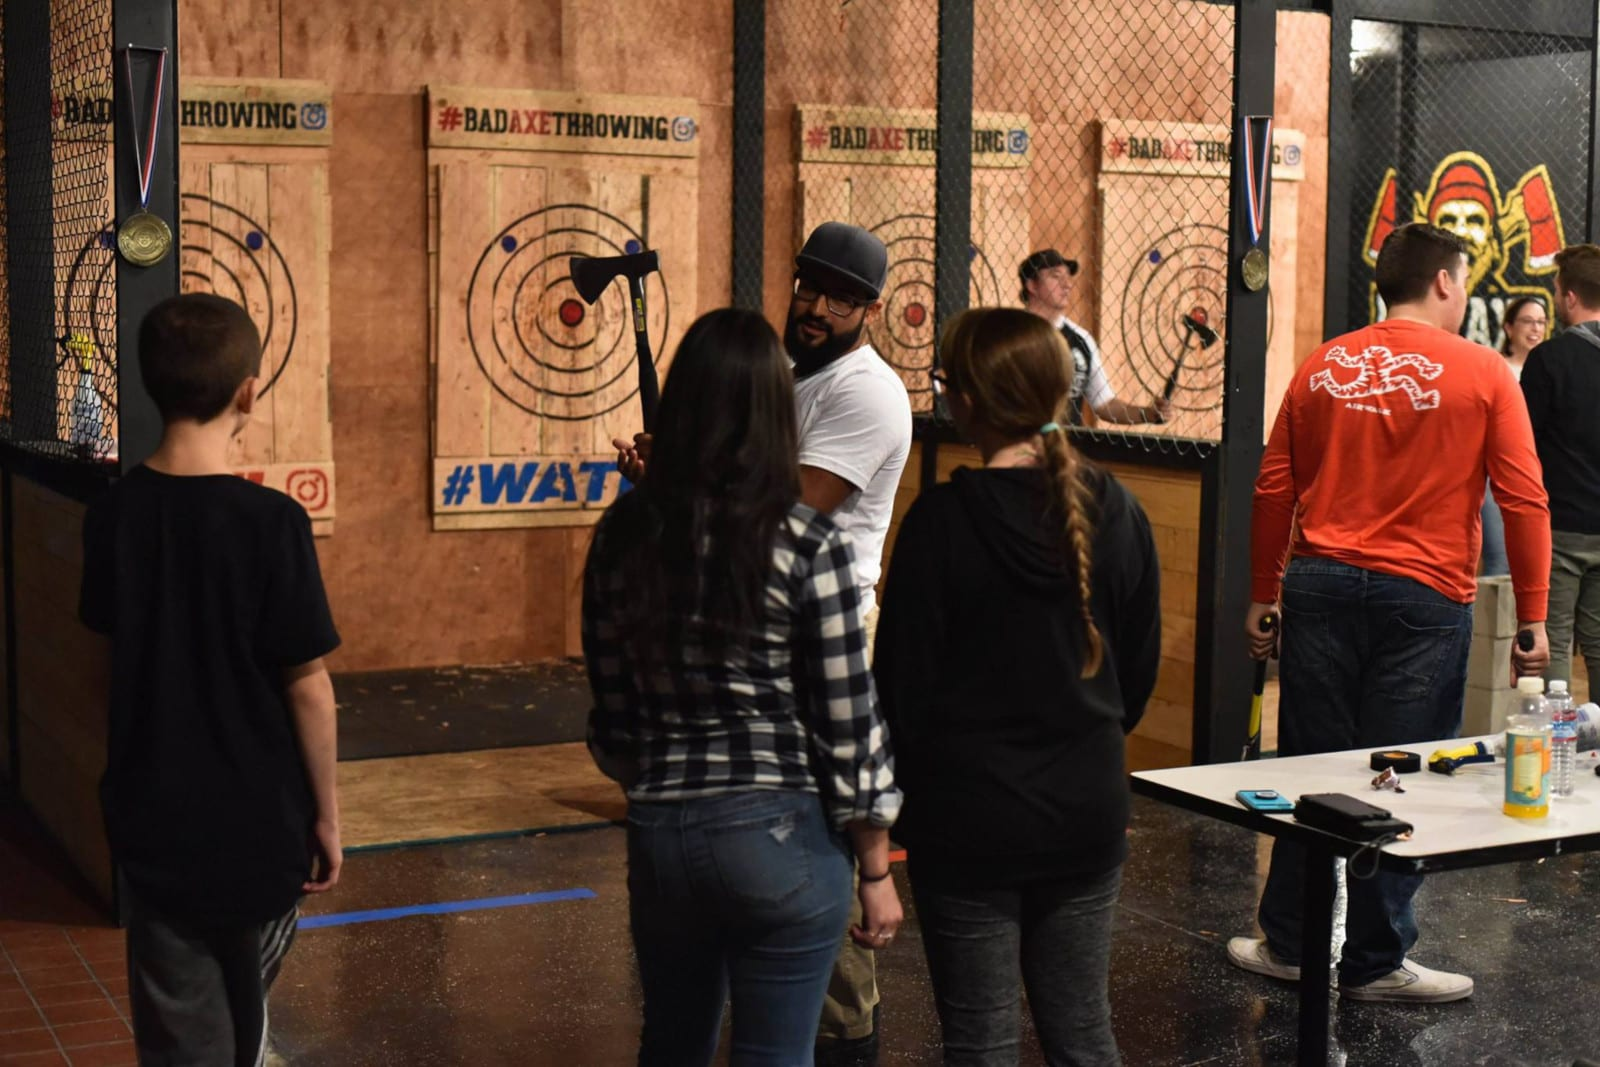 Bad Axe Throwing Denver CO Group